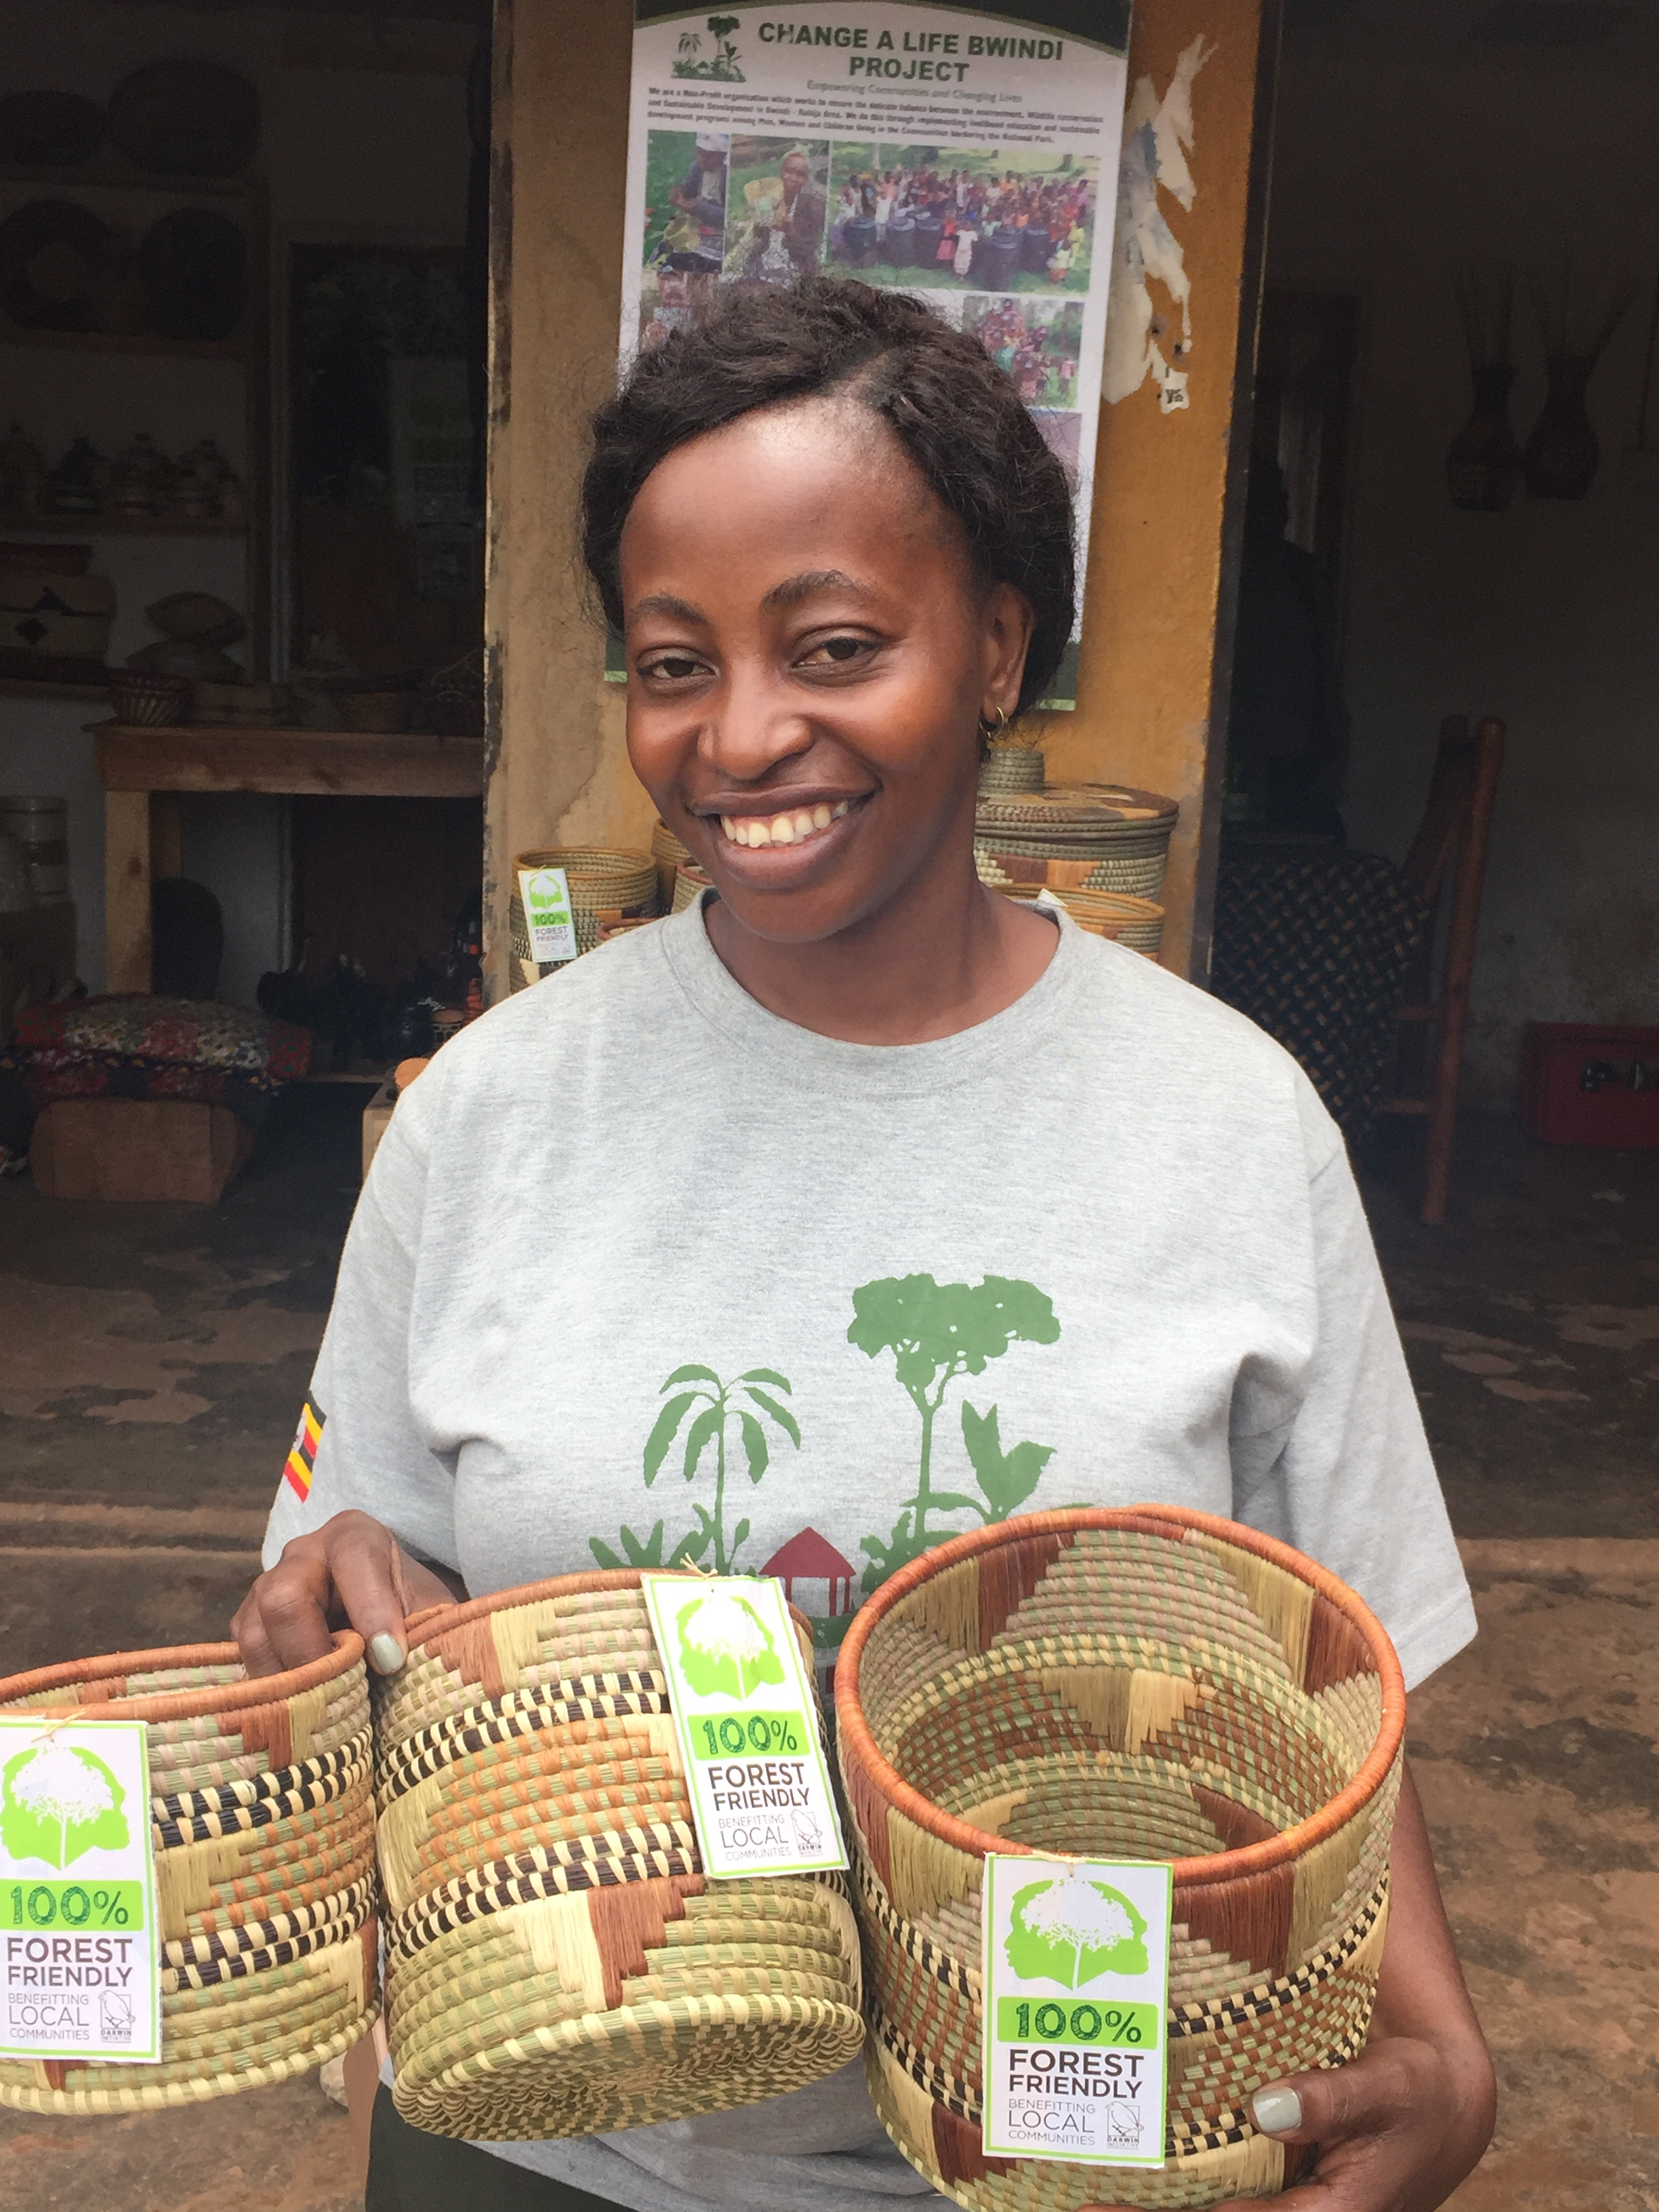 Uganda 23-023 Tina from Change a Life Bwindi, displaying baskets made by women in her cooperative, Credit - Dilys Roe